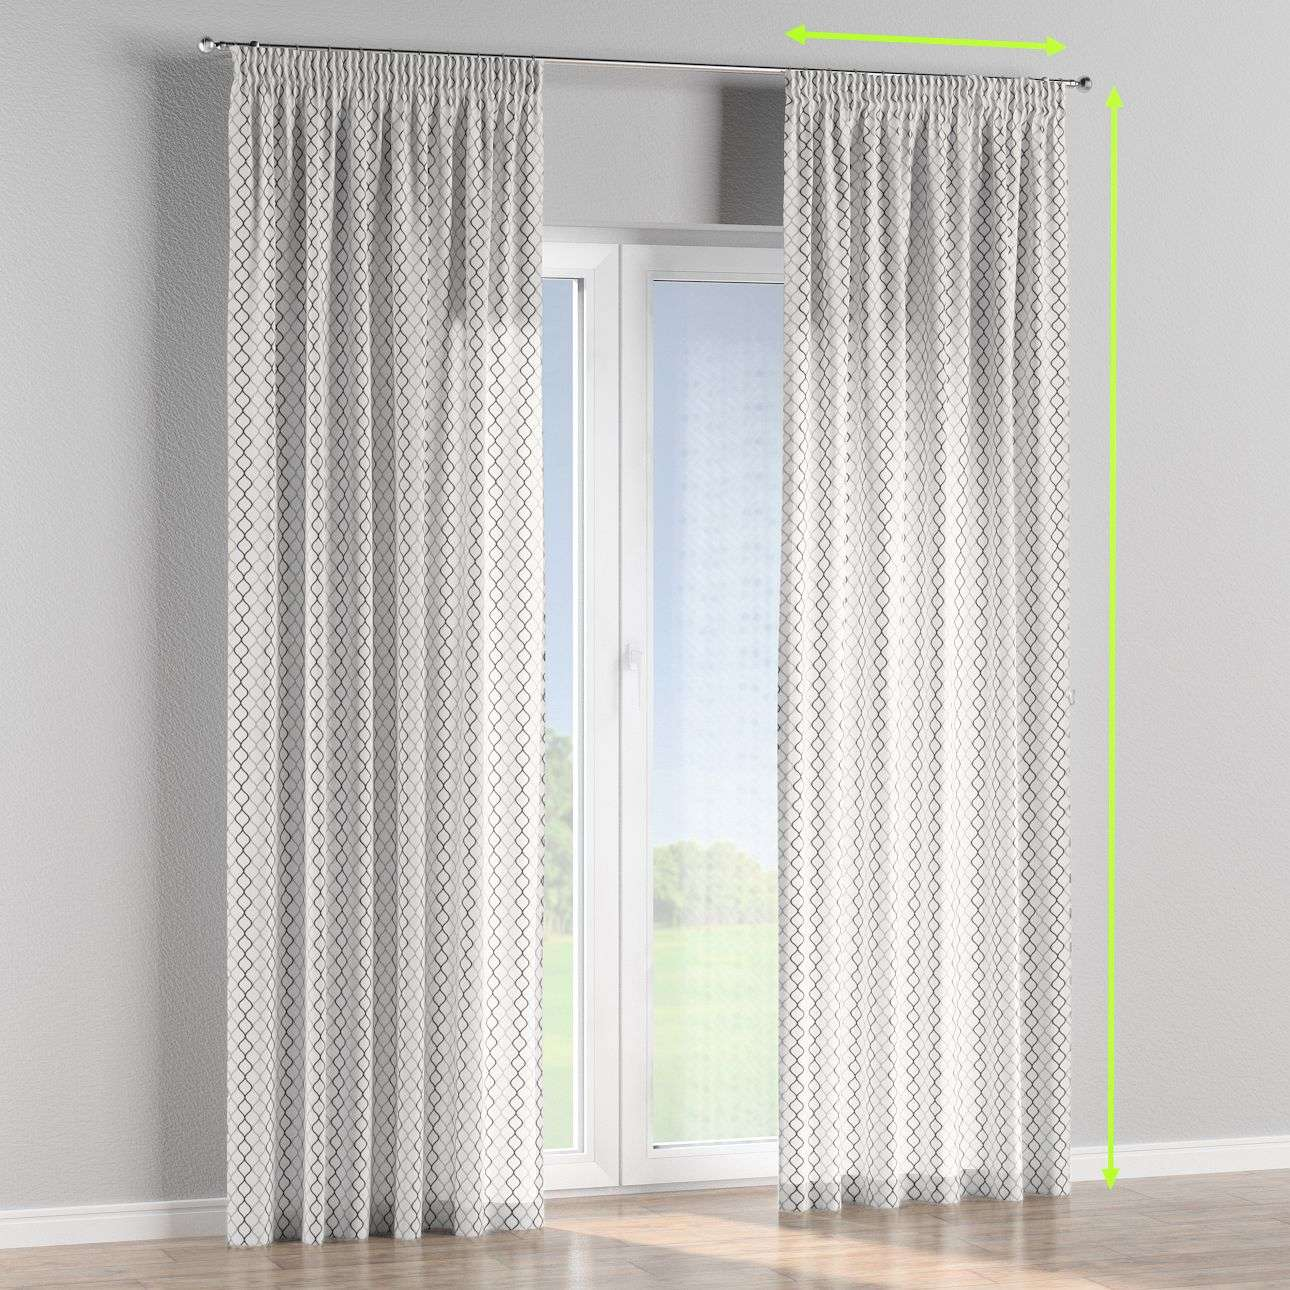 Pencil pleat lined curtains in collection Geometric, fabric: 141-46